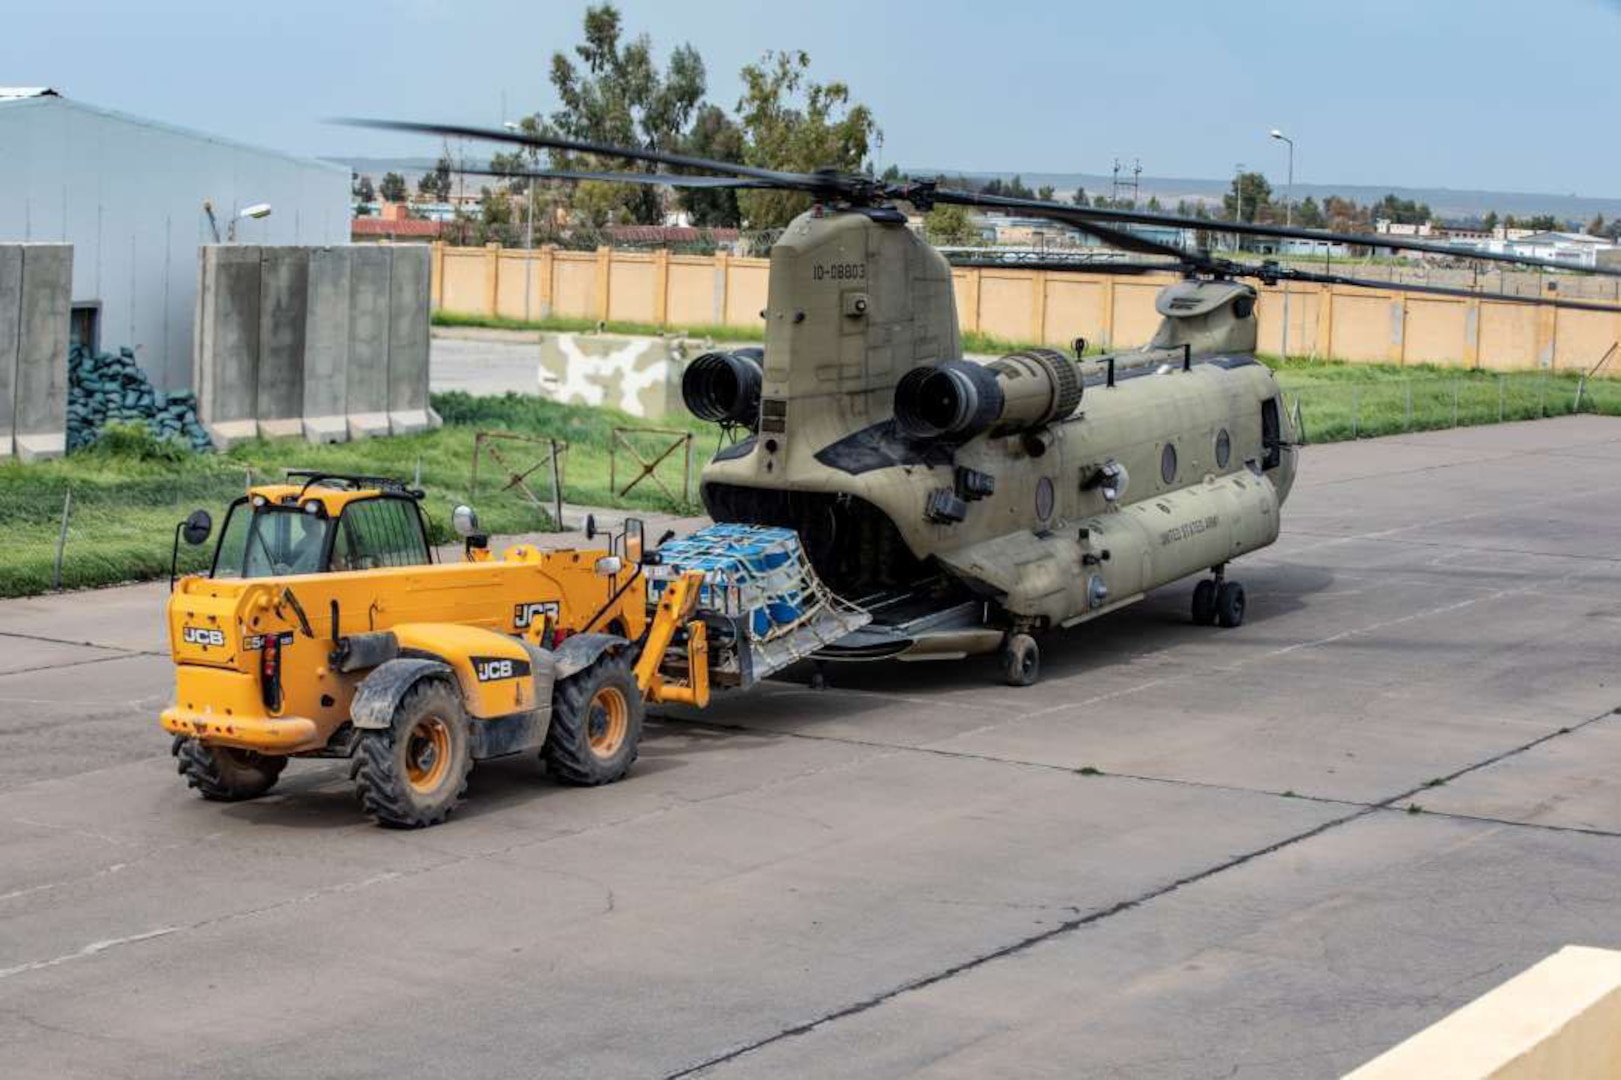 A small vehicle loads a pallet onto a helicopter.